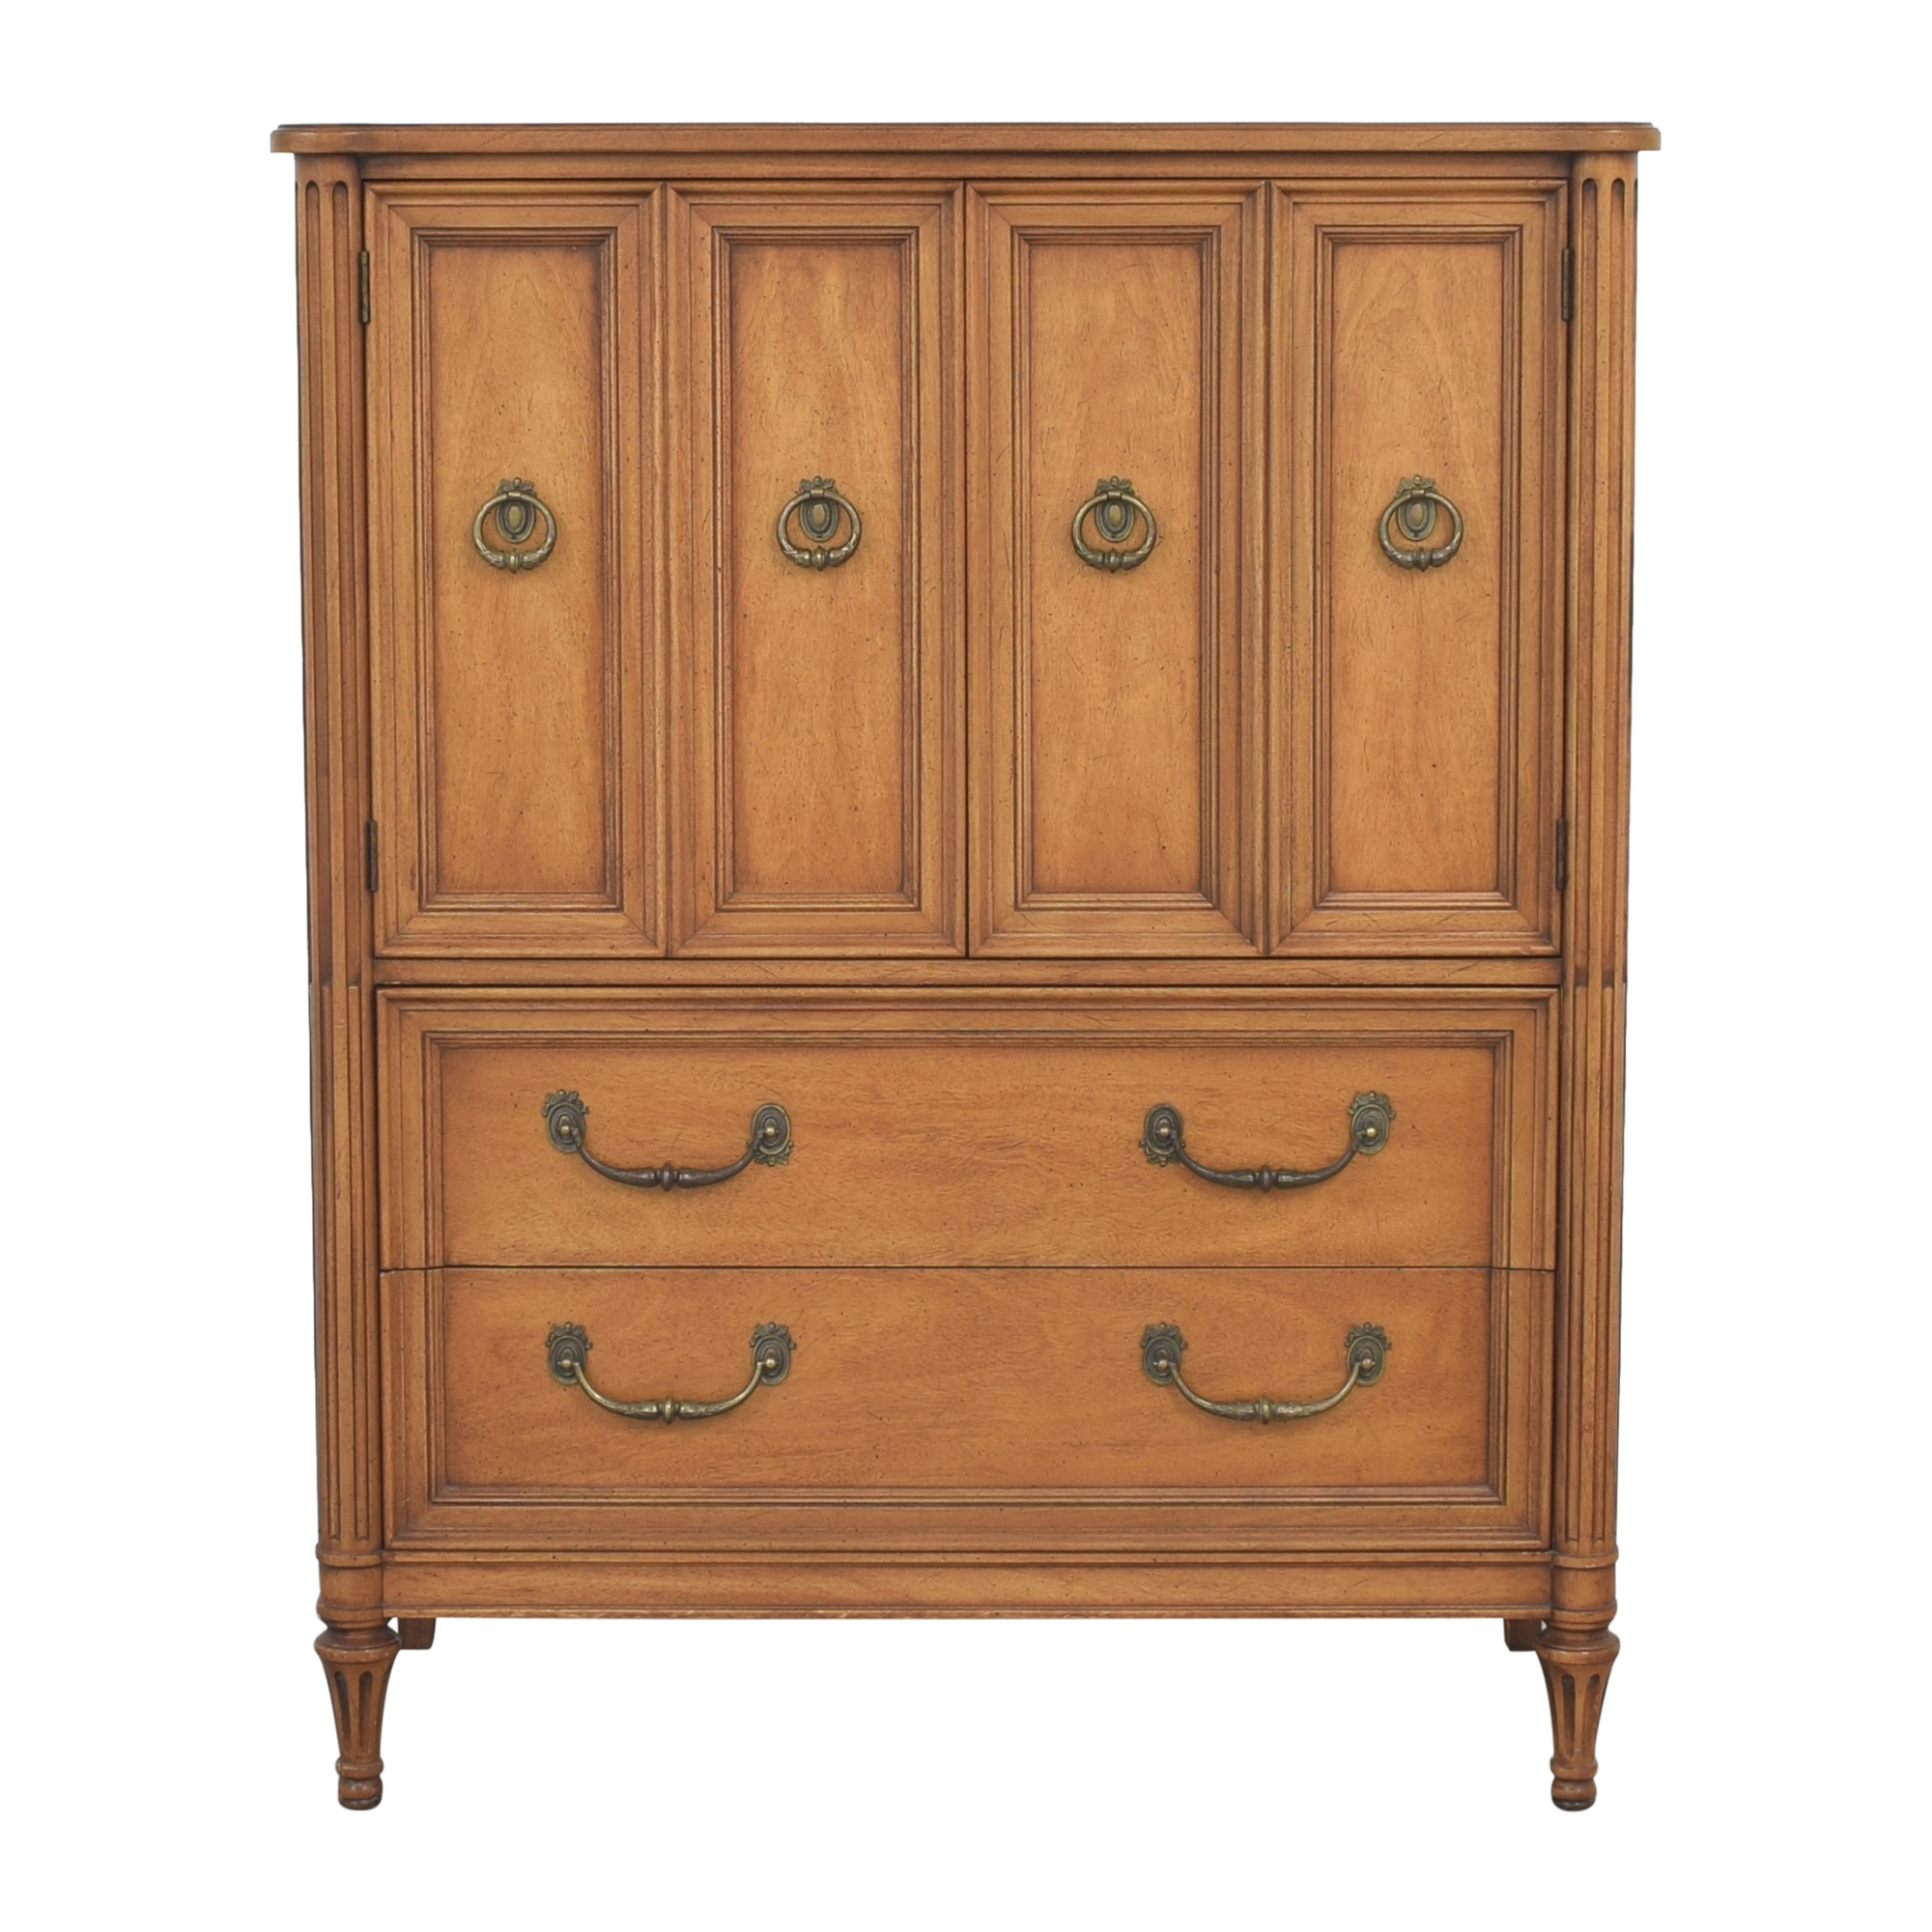 Henredon Furniture Henredon Furniture Two Door Armoire on sale